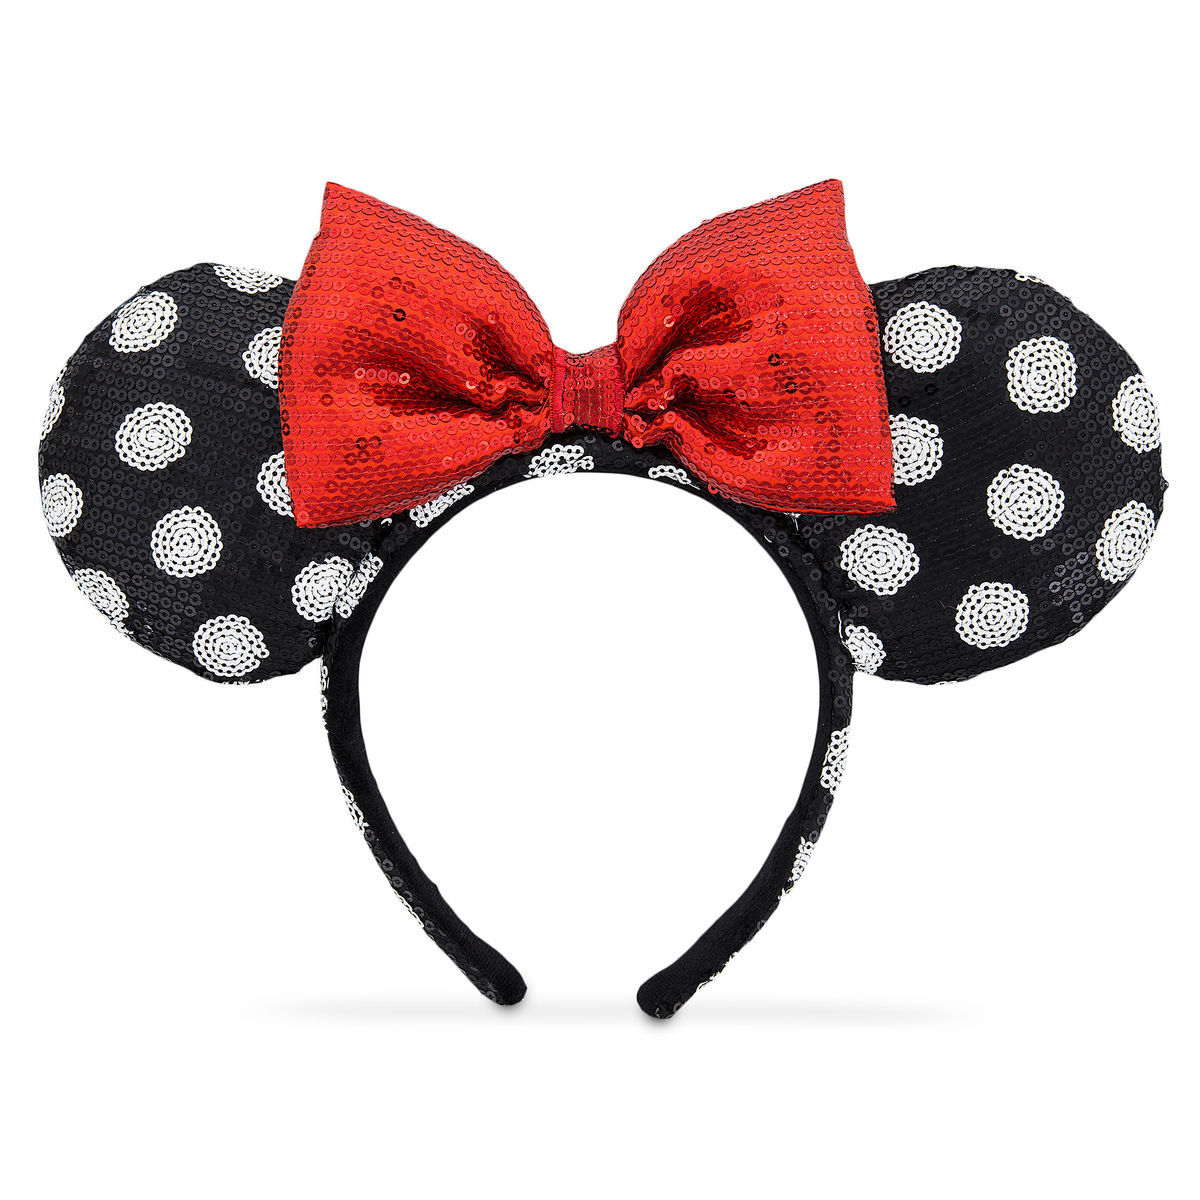 e8cb82ab280 Product Image of Minnie Mouse Ear Headband - Black and White   1